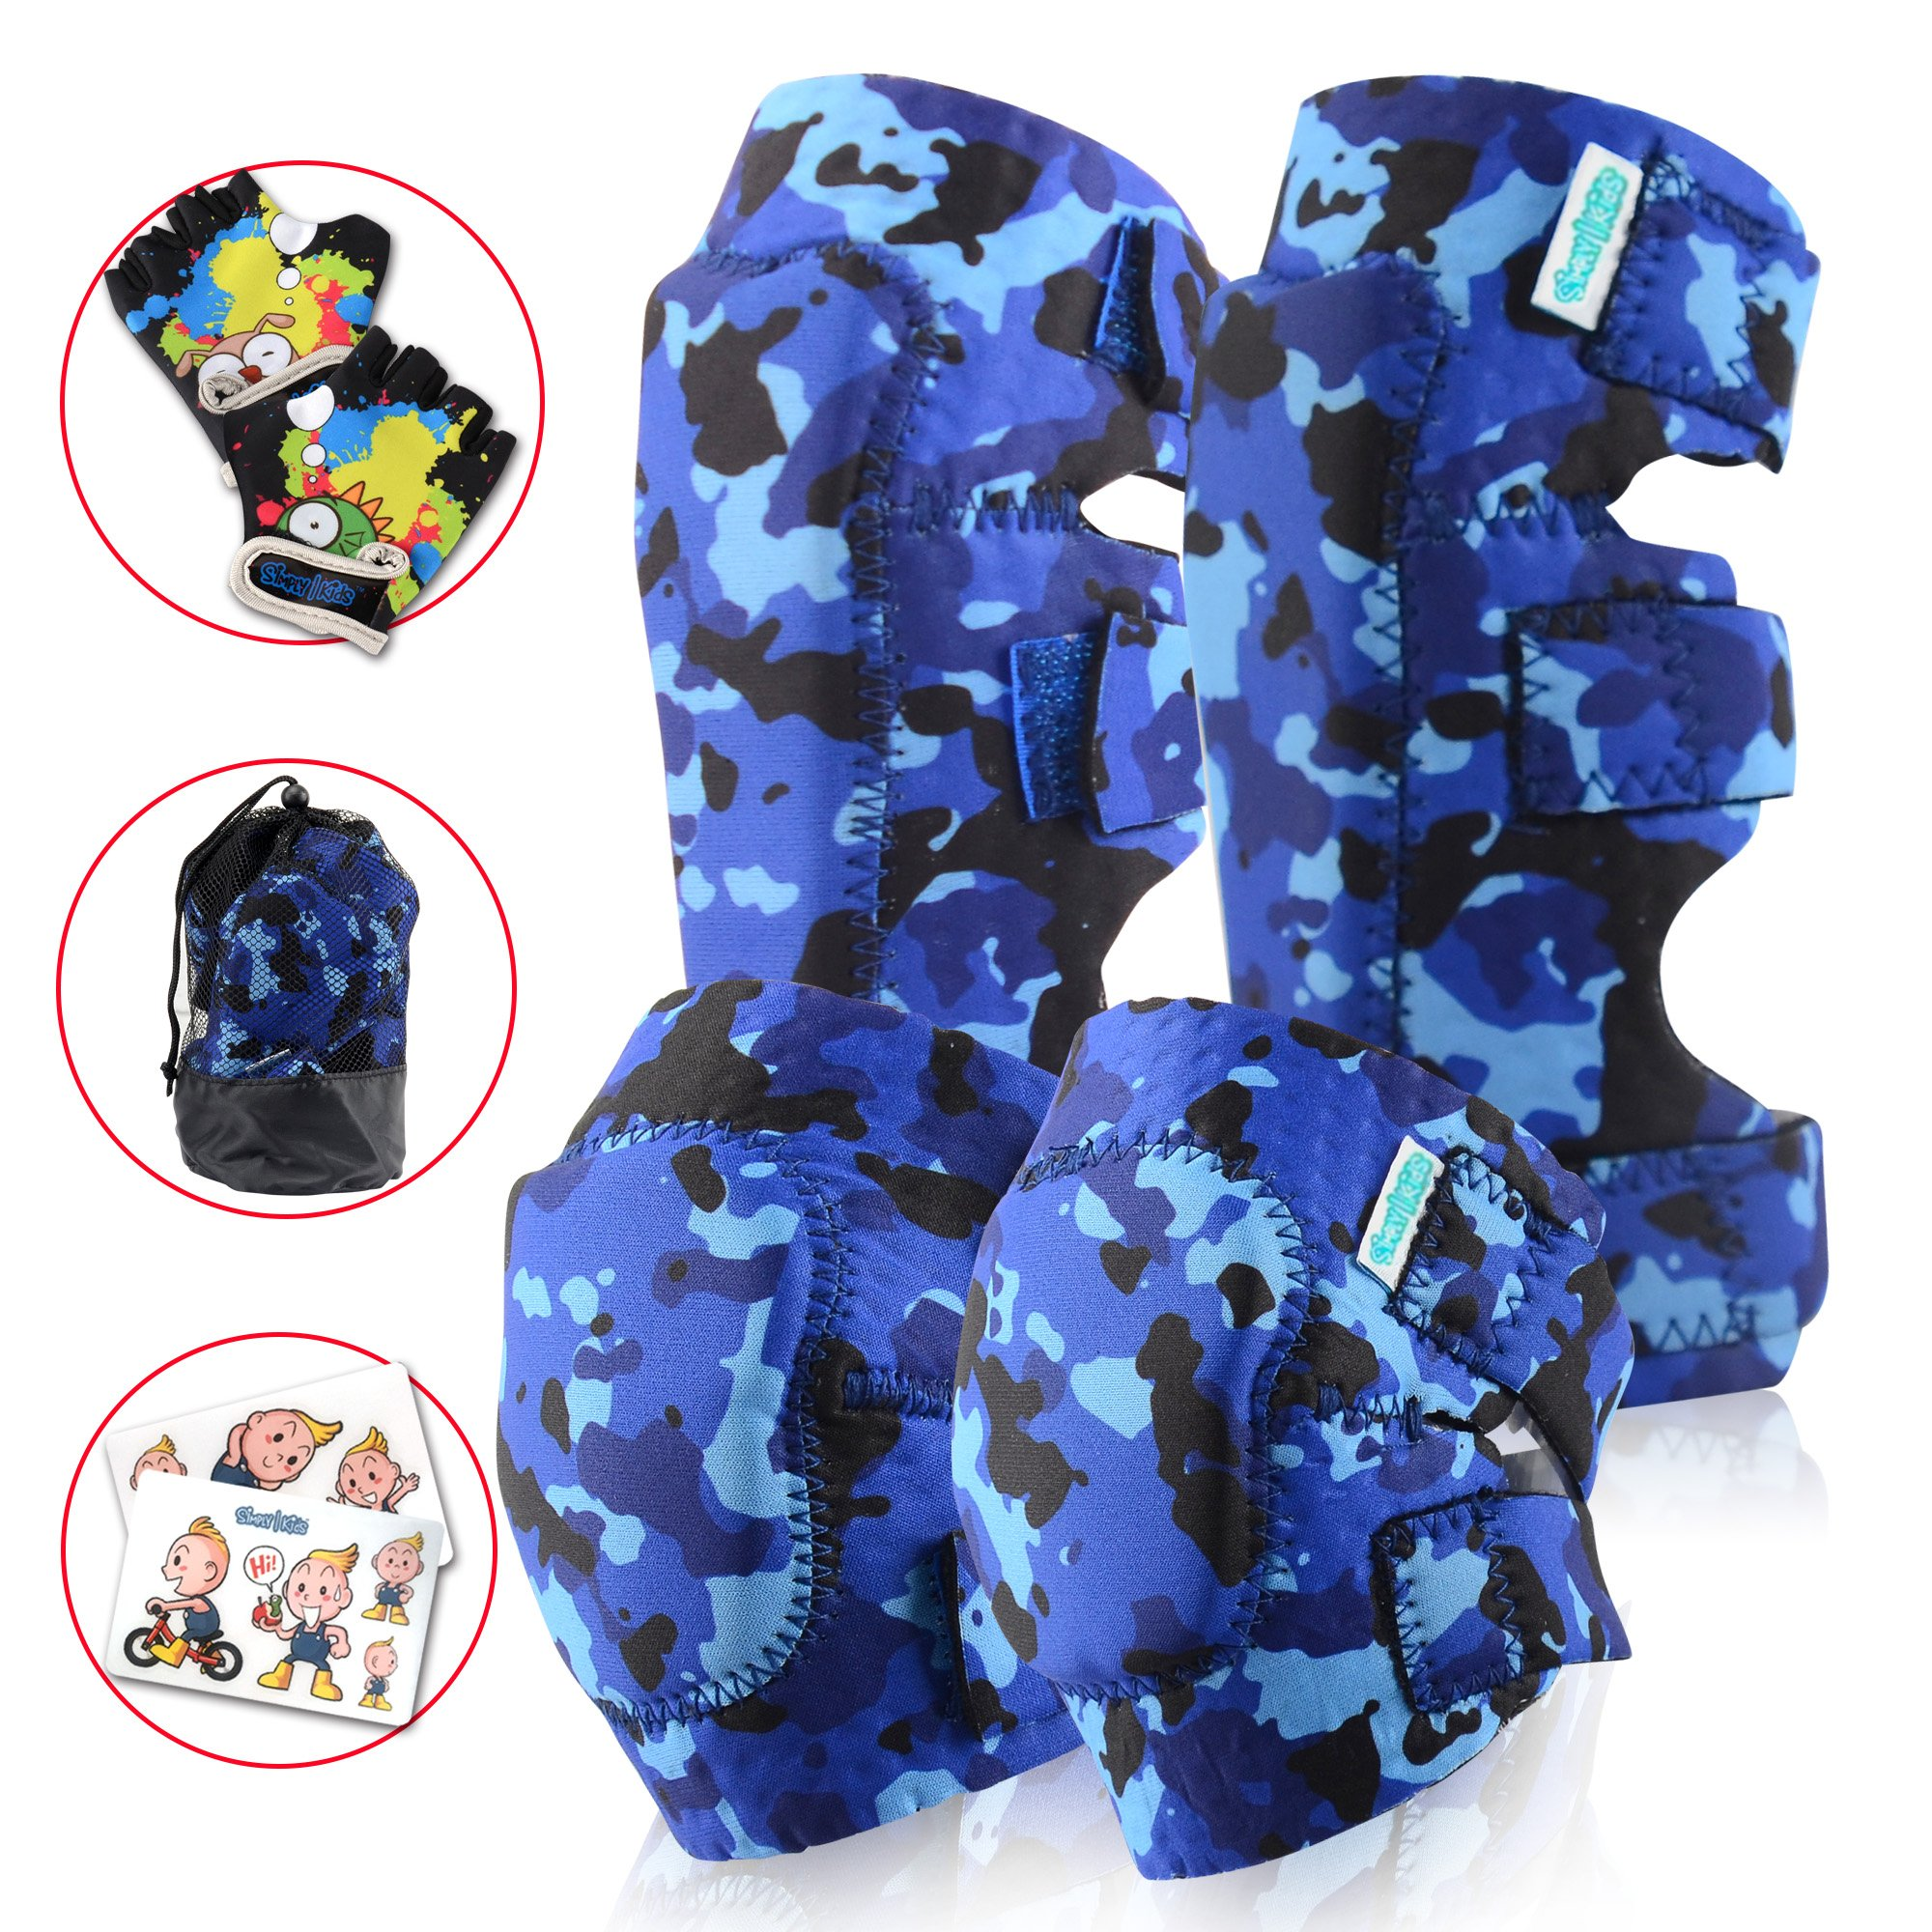 Kids Knee and Elbow Pads Plus Bike Gloves | Toddler Protective Gear Set | Soft Flexible Breathable Safe | Roller Skate, Skateboard, Rollerblade Elbow Knee Pads for Child Boys and Girls (Ocean Camo)